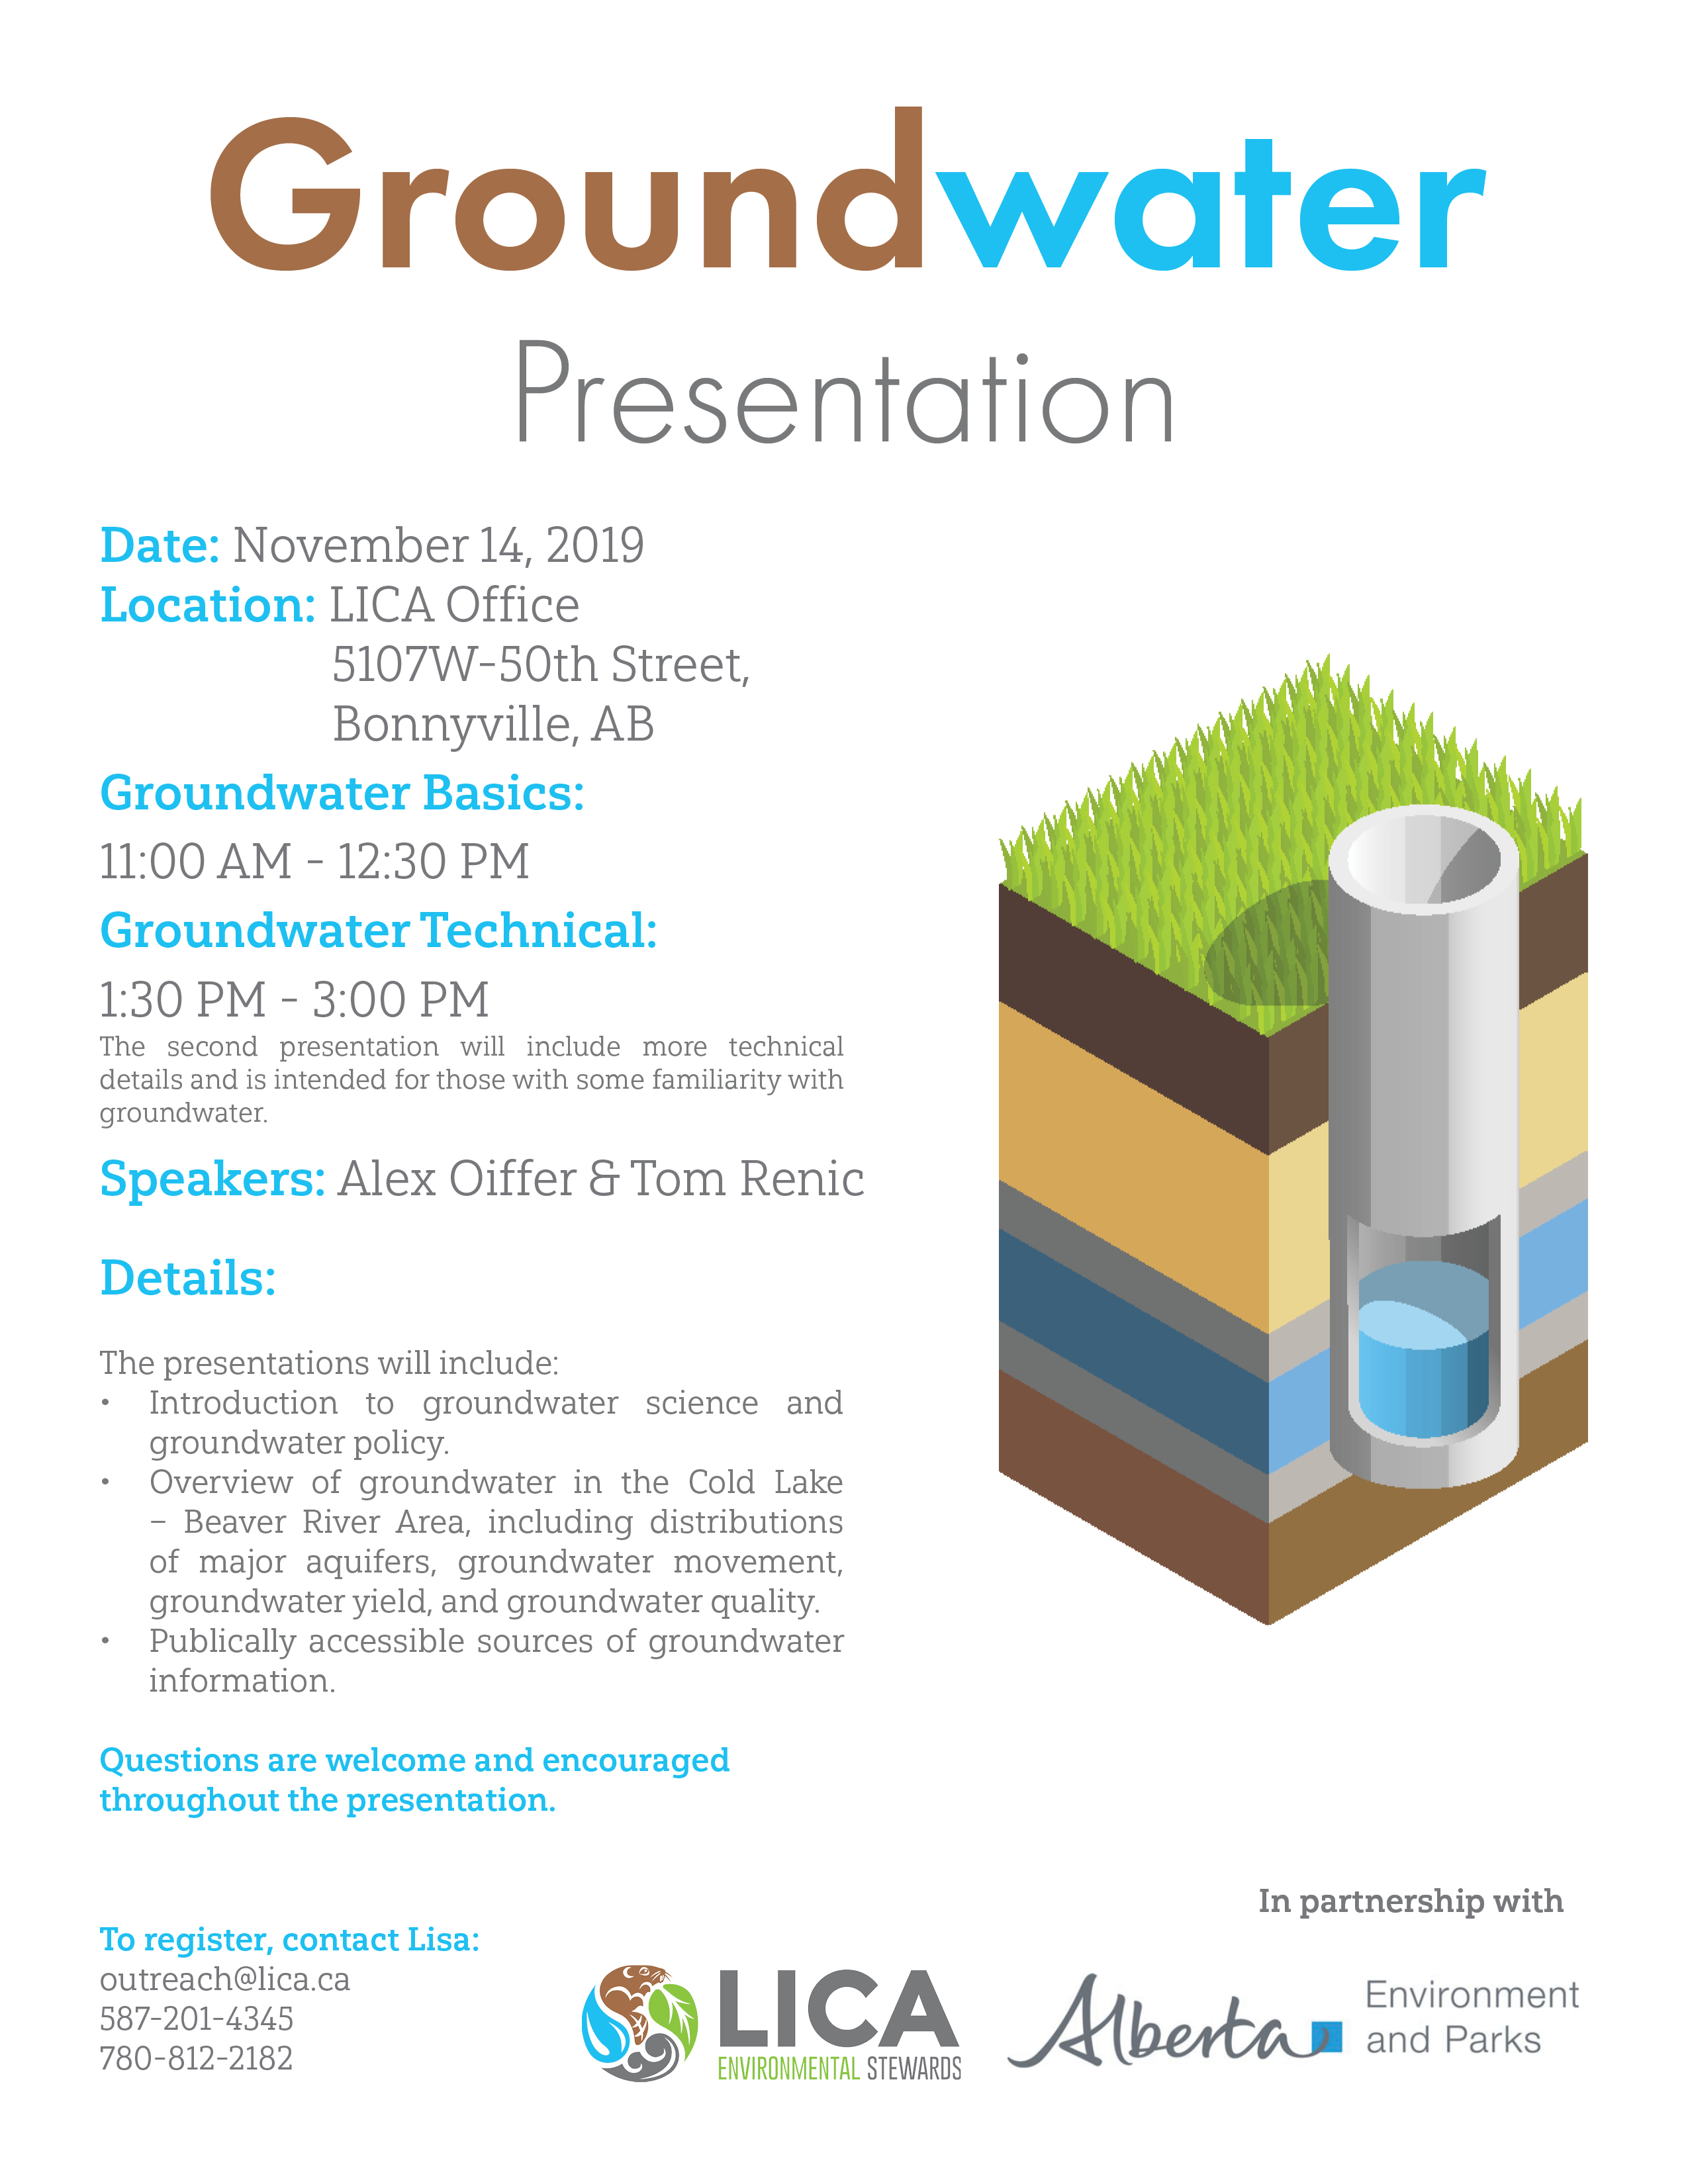 Groundwater Presentation @ LICA Office